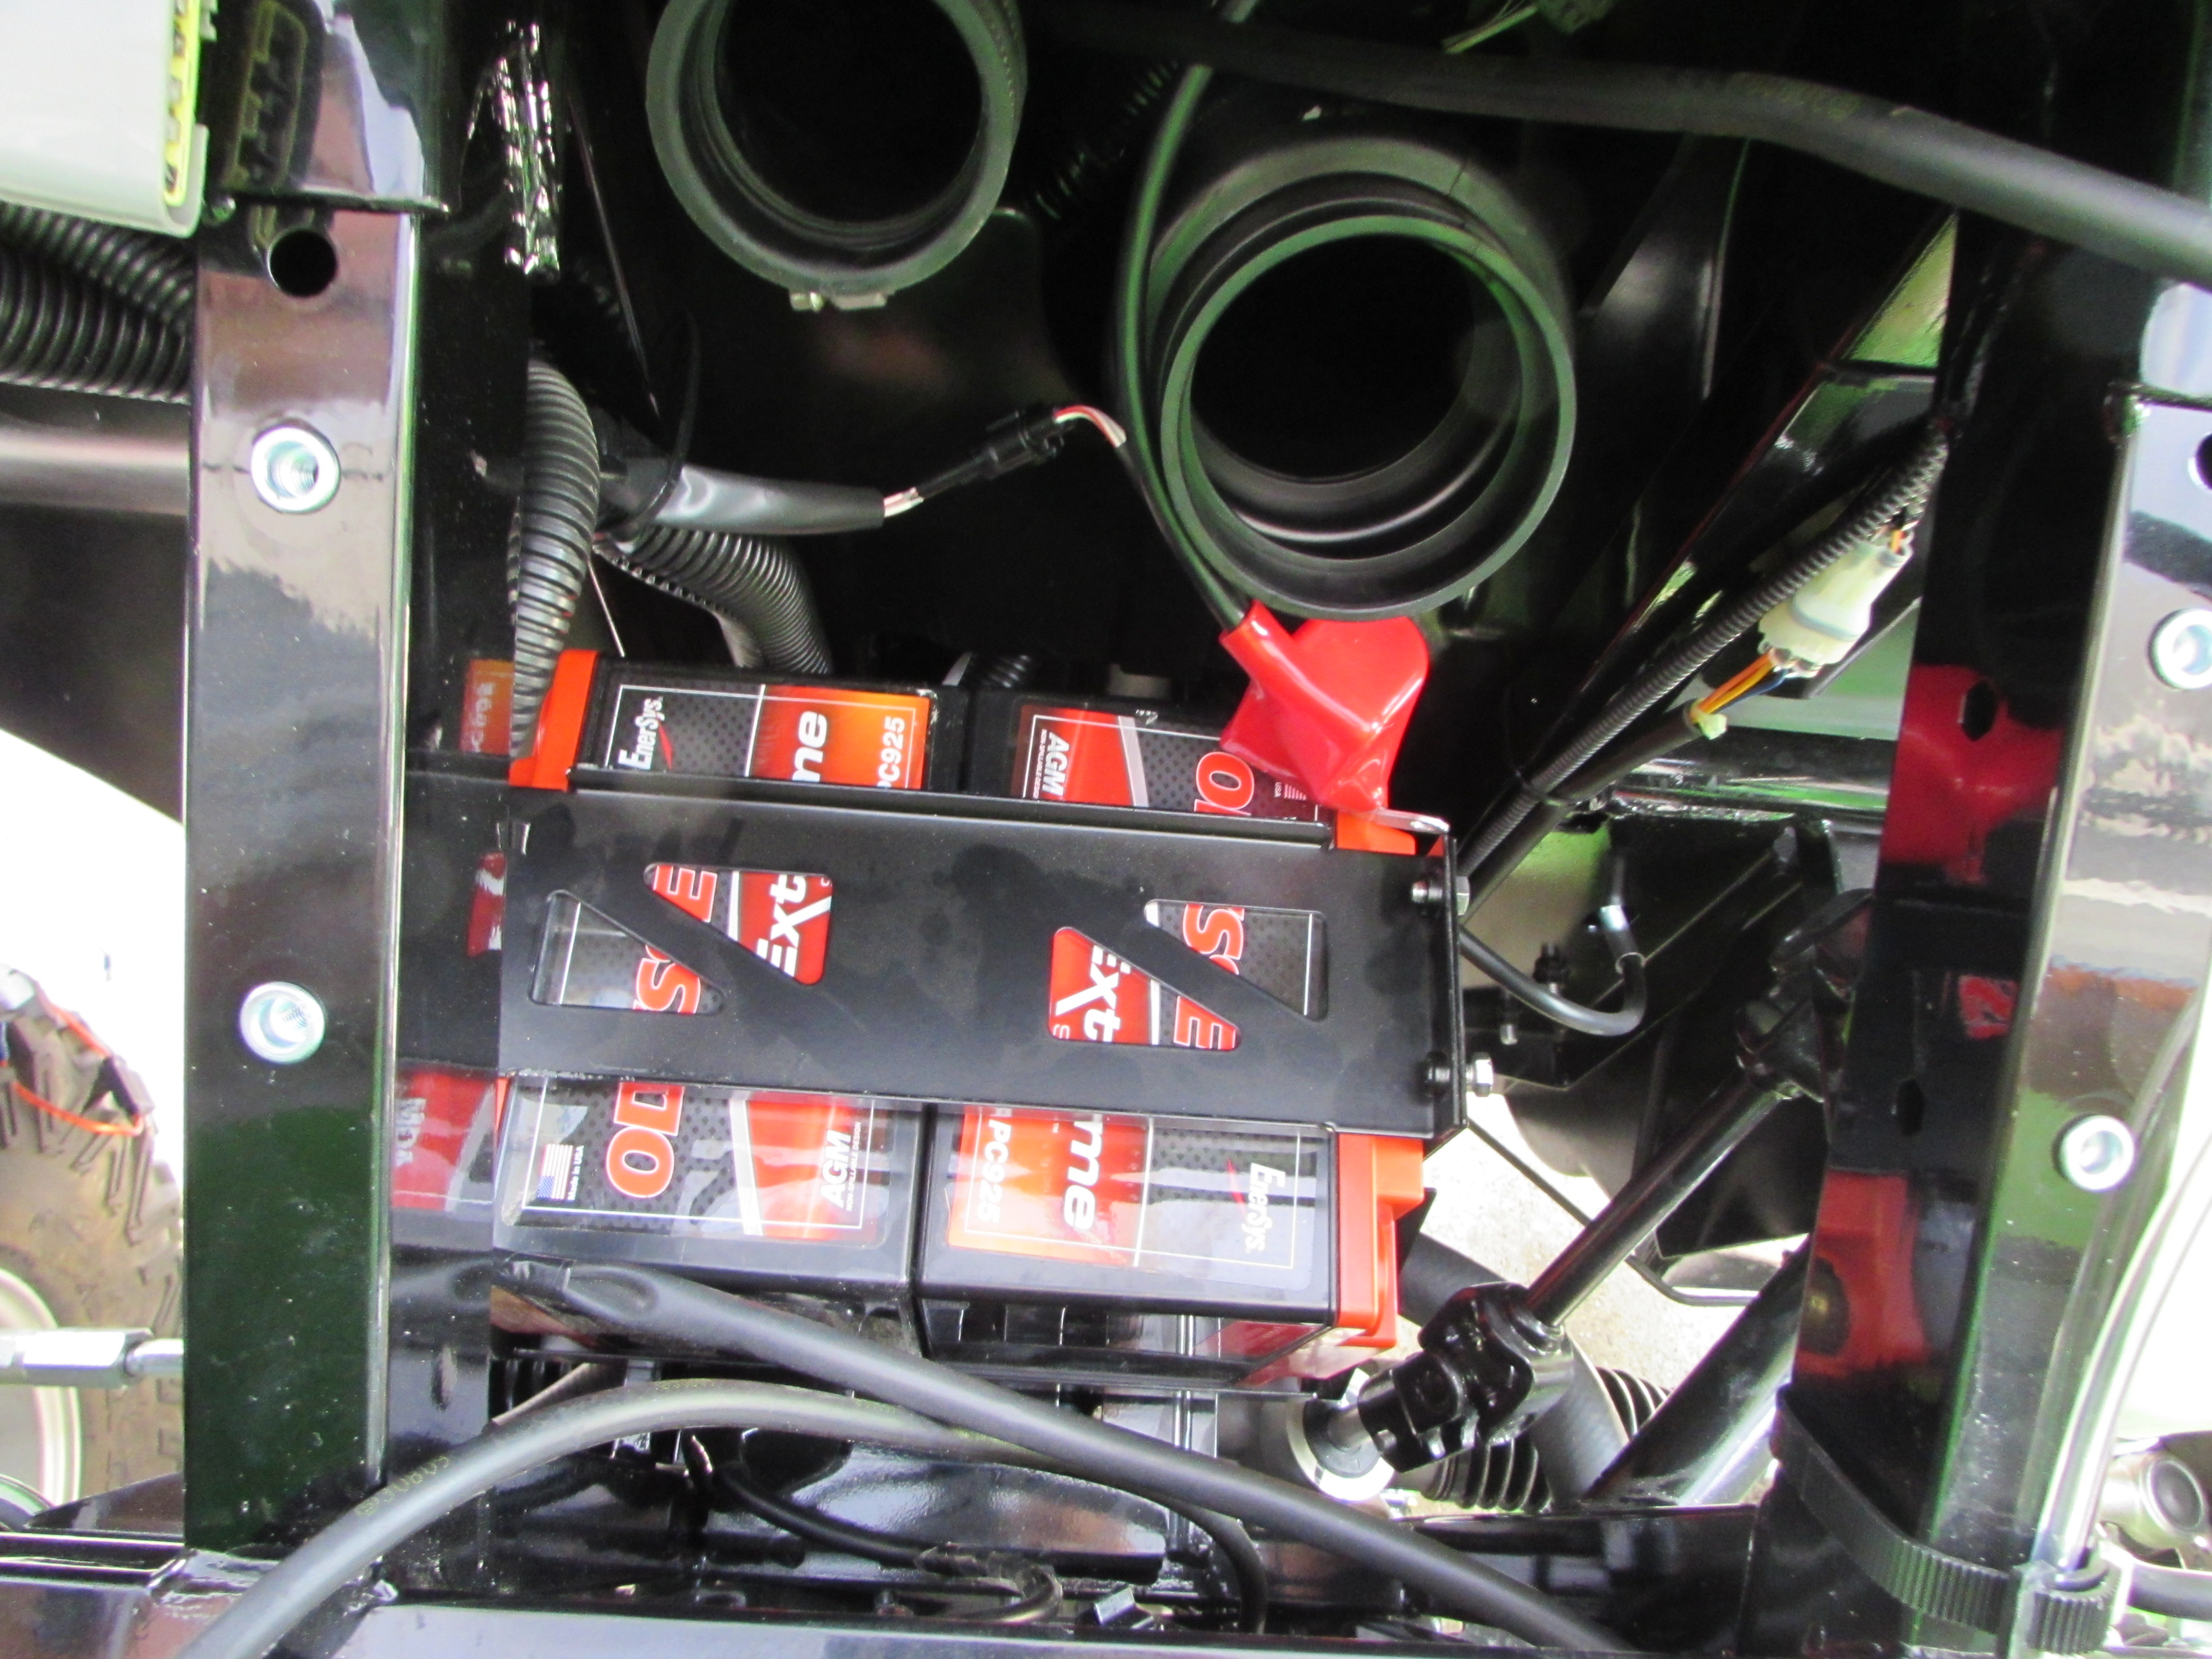 2014 Teryx Le 2 Seater Battery Options